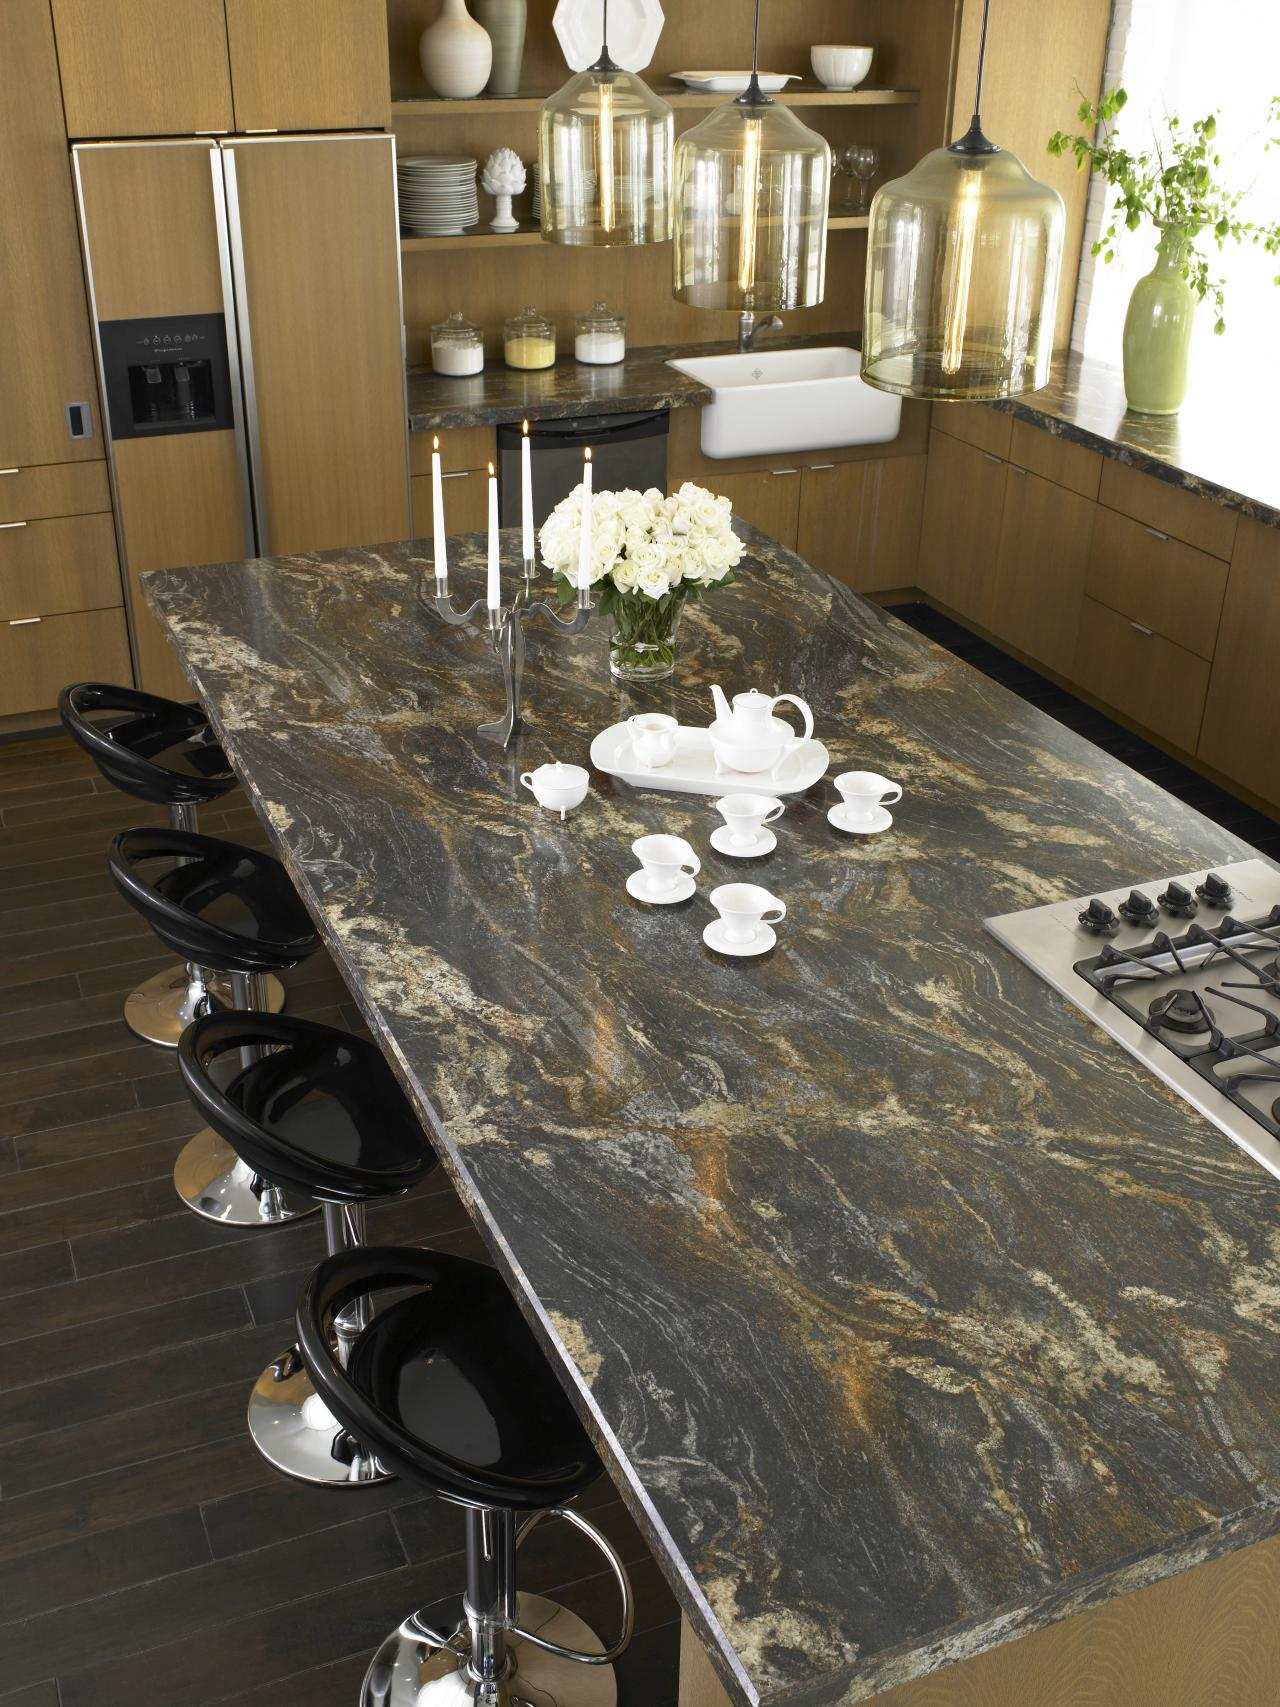 Kitchen Countertops Laminate : Laminate Kitchen Countertop HGTV